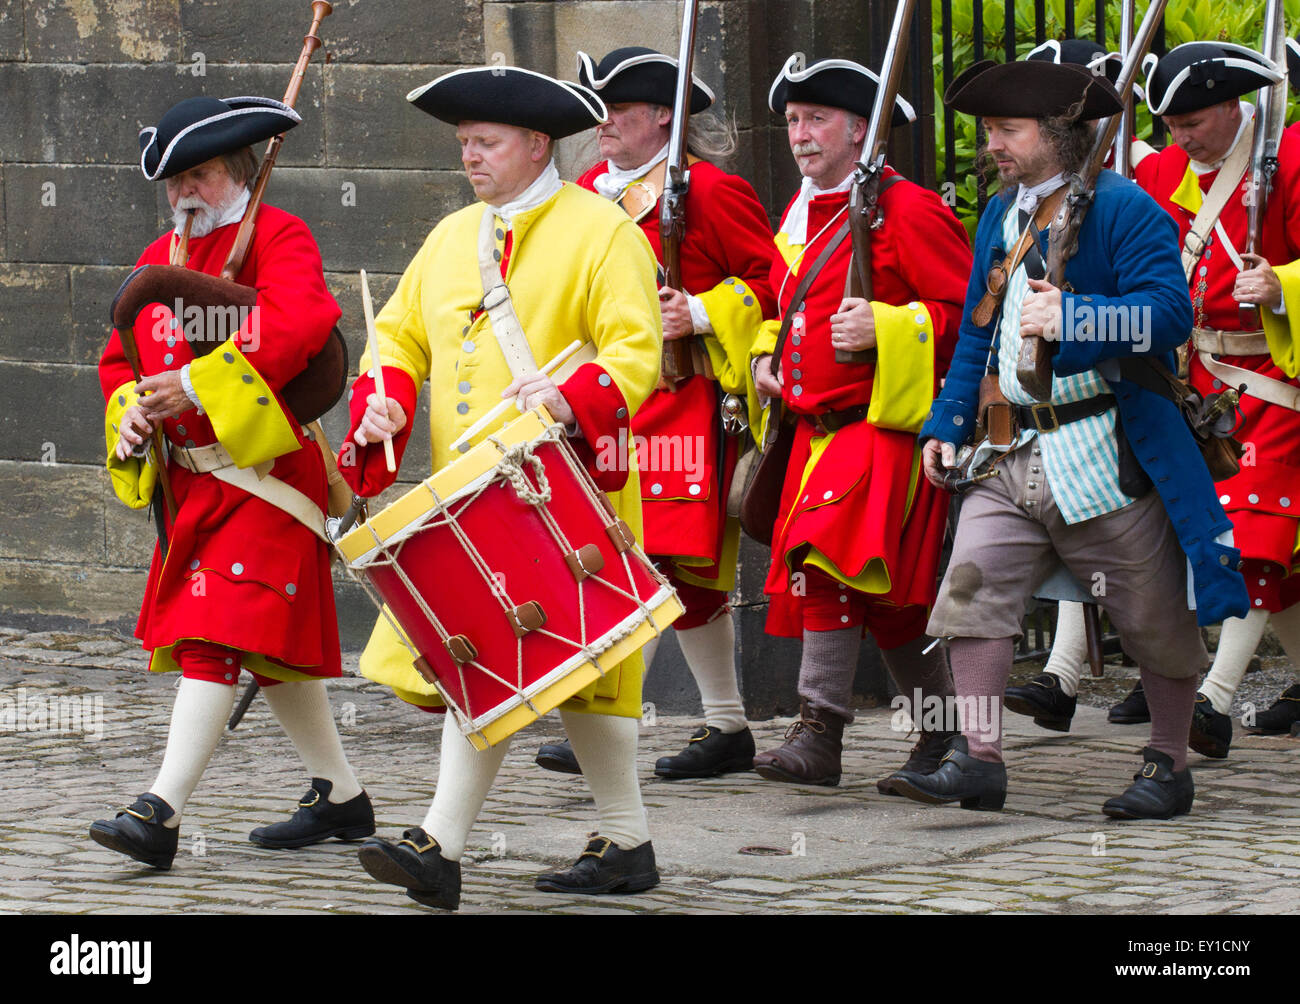 Hoghton Towers, Chorley, Lancashire, UK. 19th July, 2015.  English redcoat musketeers marching at the re-enactment Stock Photo